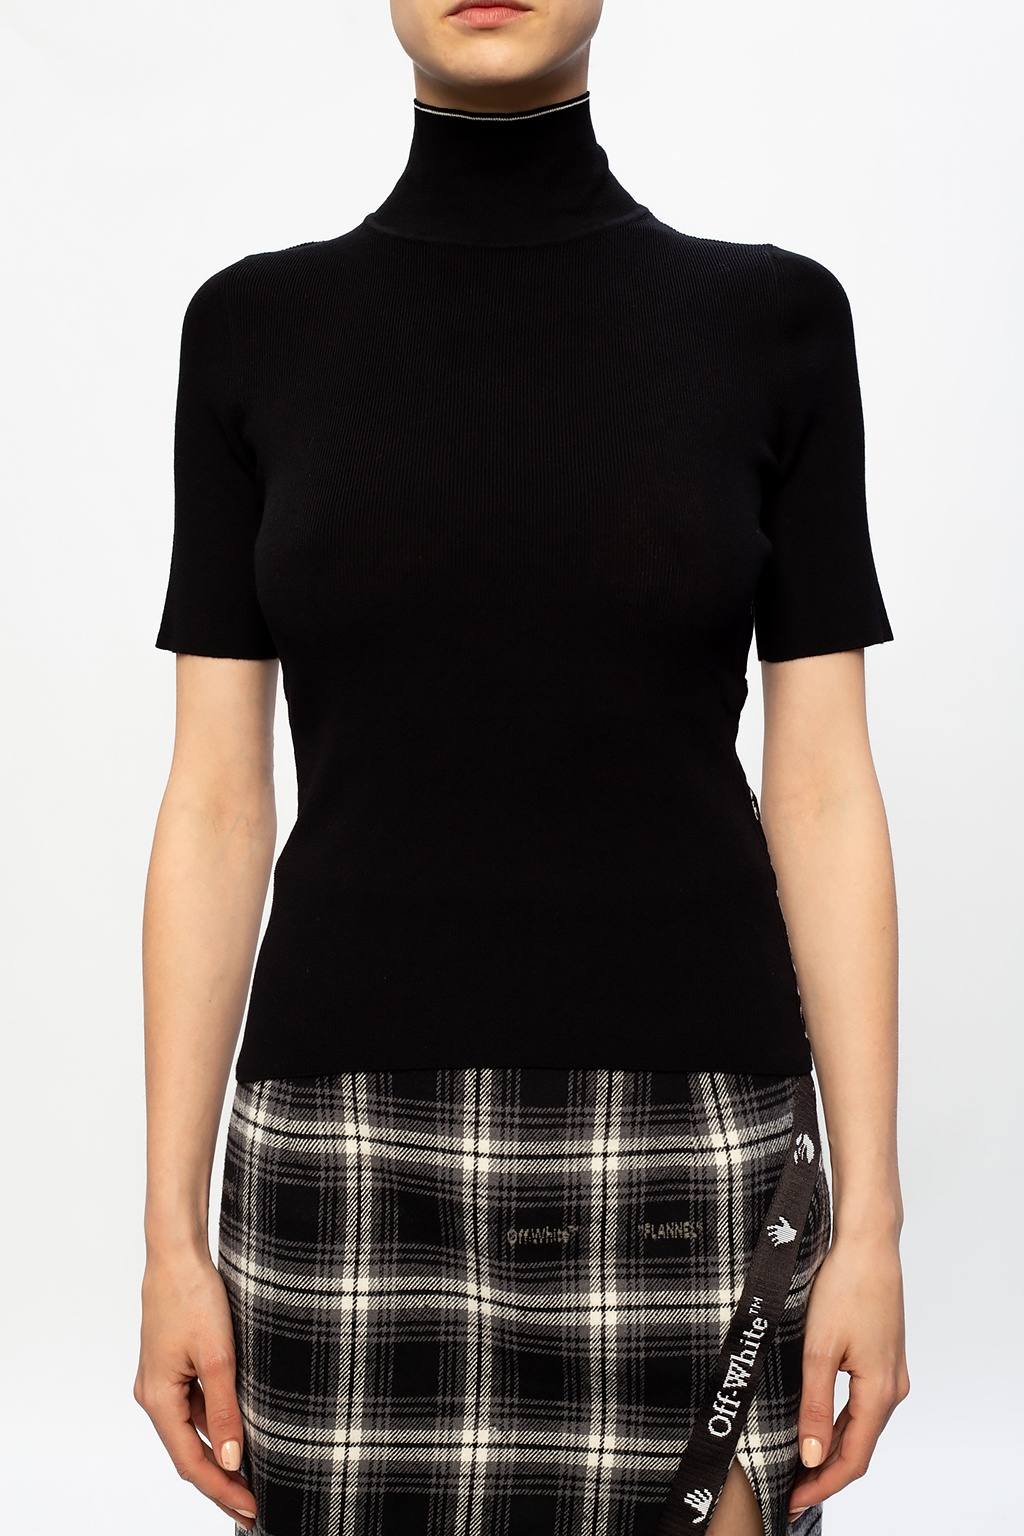 Off-White Band collar top